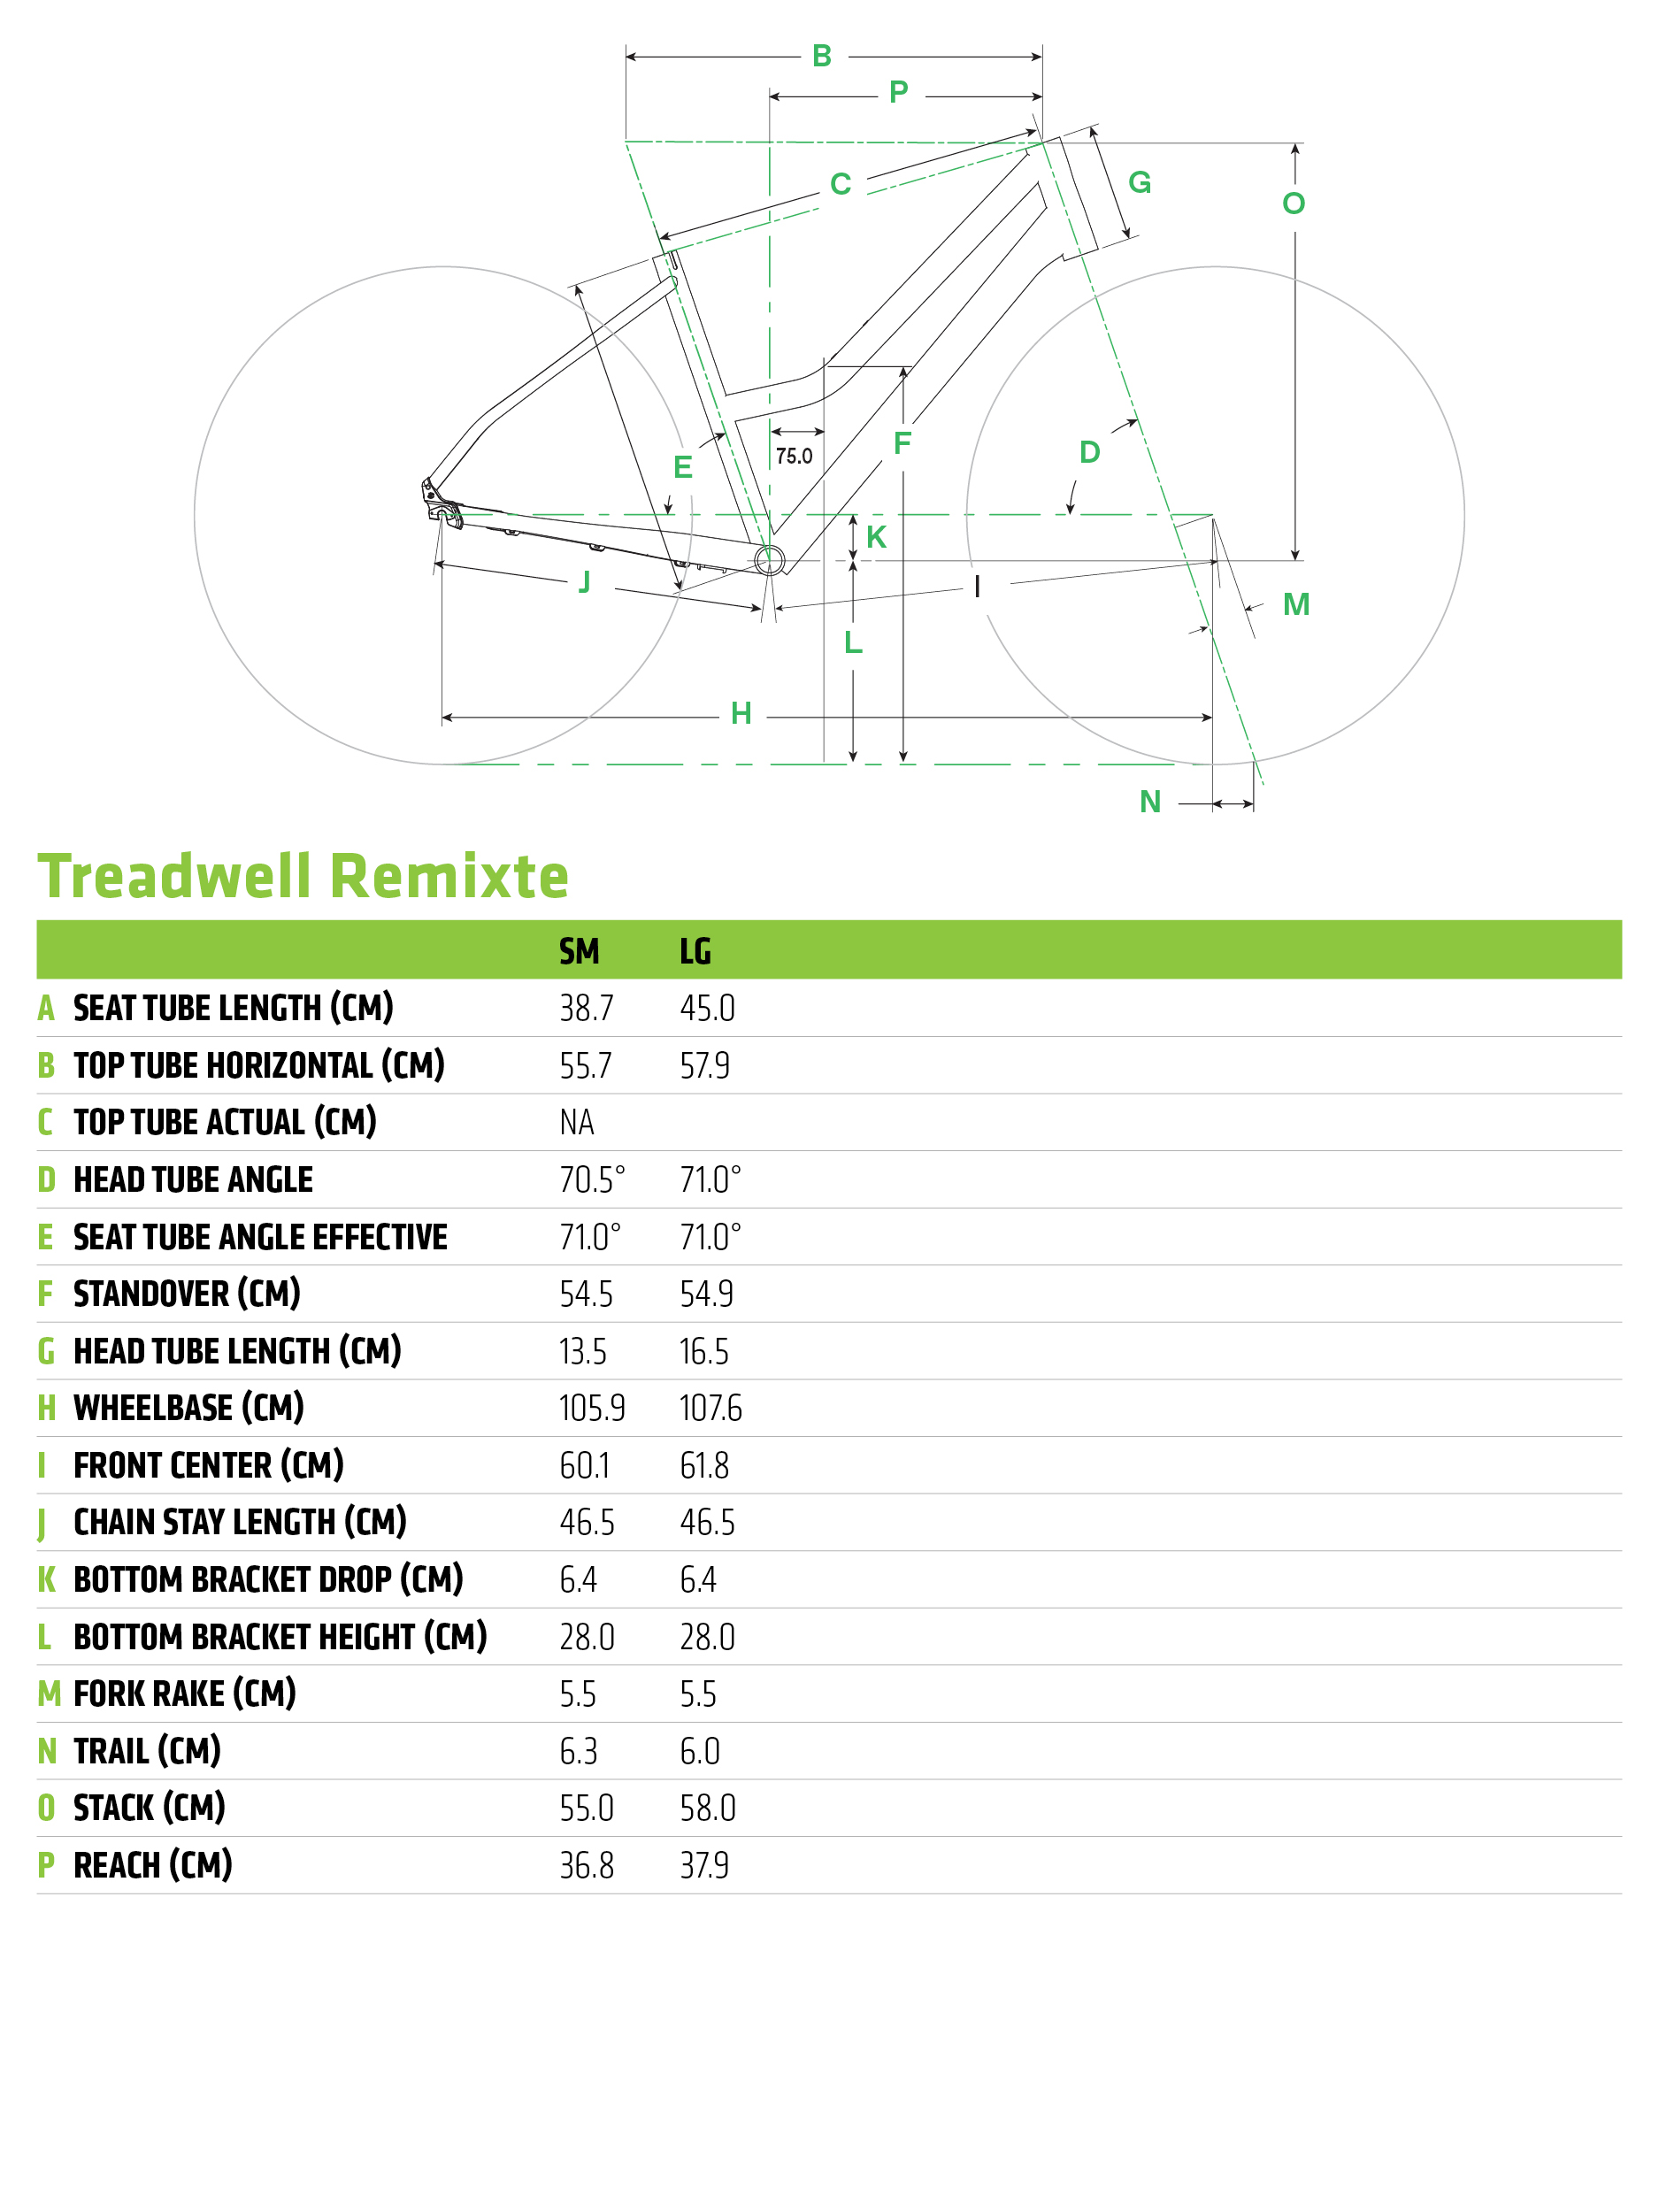 Cannondale Treadwell Remixte geometry chart